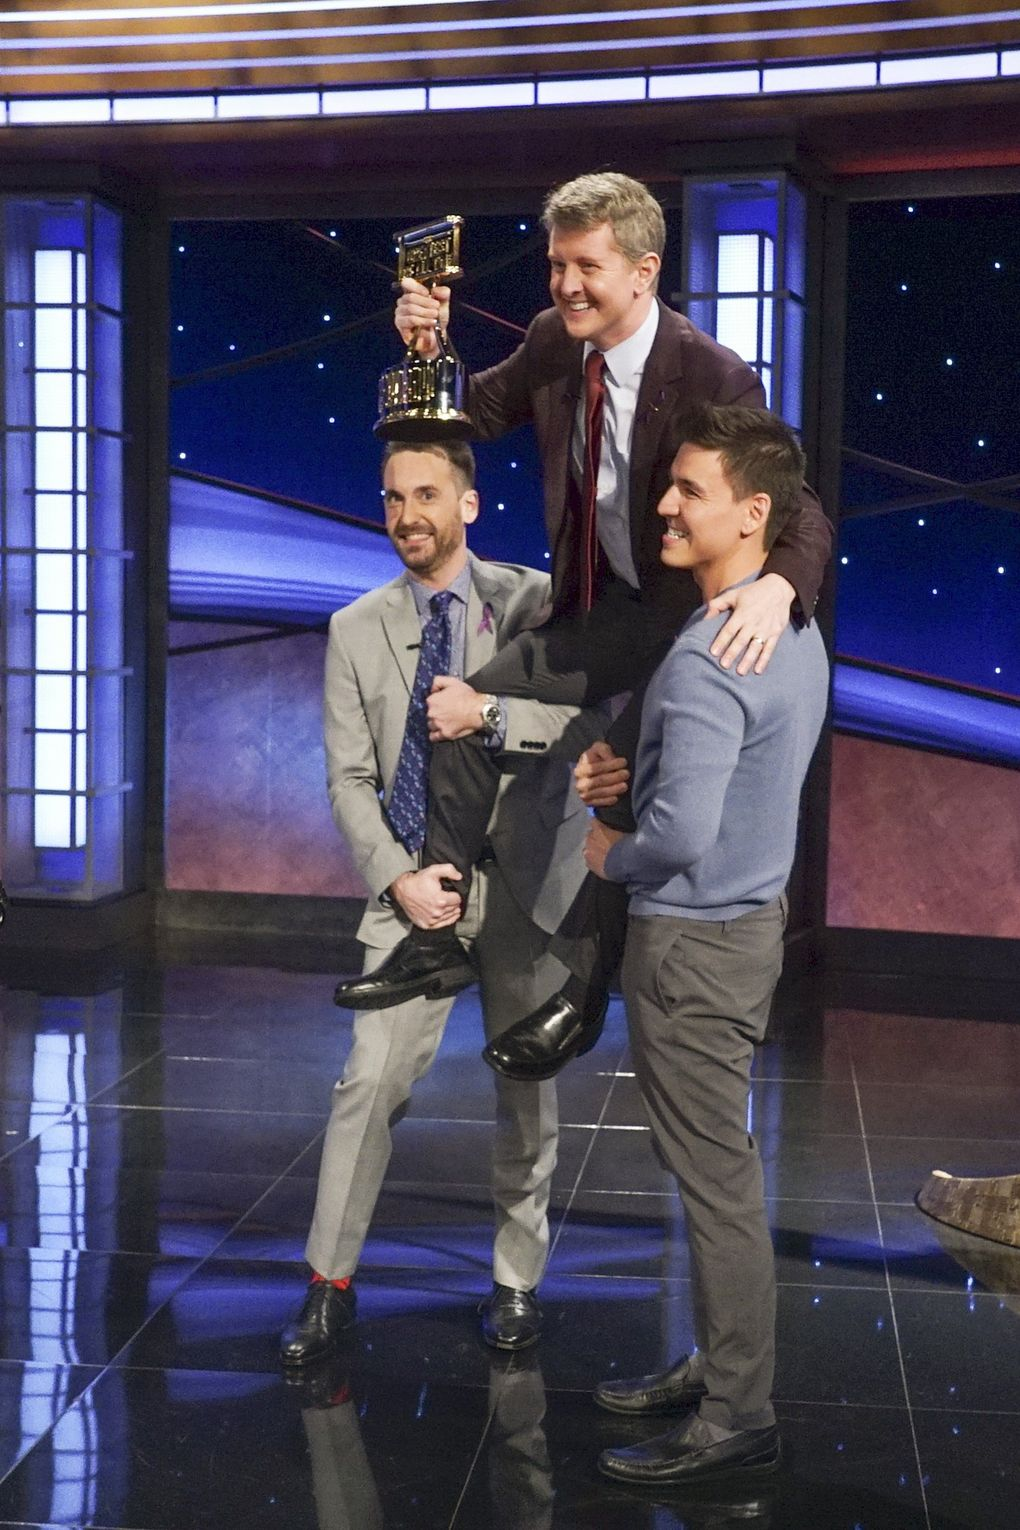 """Seattle's Ken Jennings is hoisted by his """"Jeopardy! The Greatest of All Time"""" competitors James Holzhauer, right, and Brad Rutter. Jennings has earned more than $3.5 million from his appearances on the show. (Eric McCandless / ABC)"""